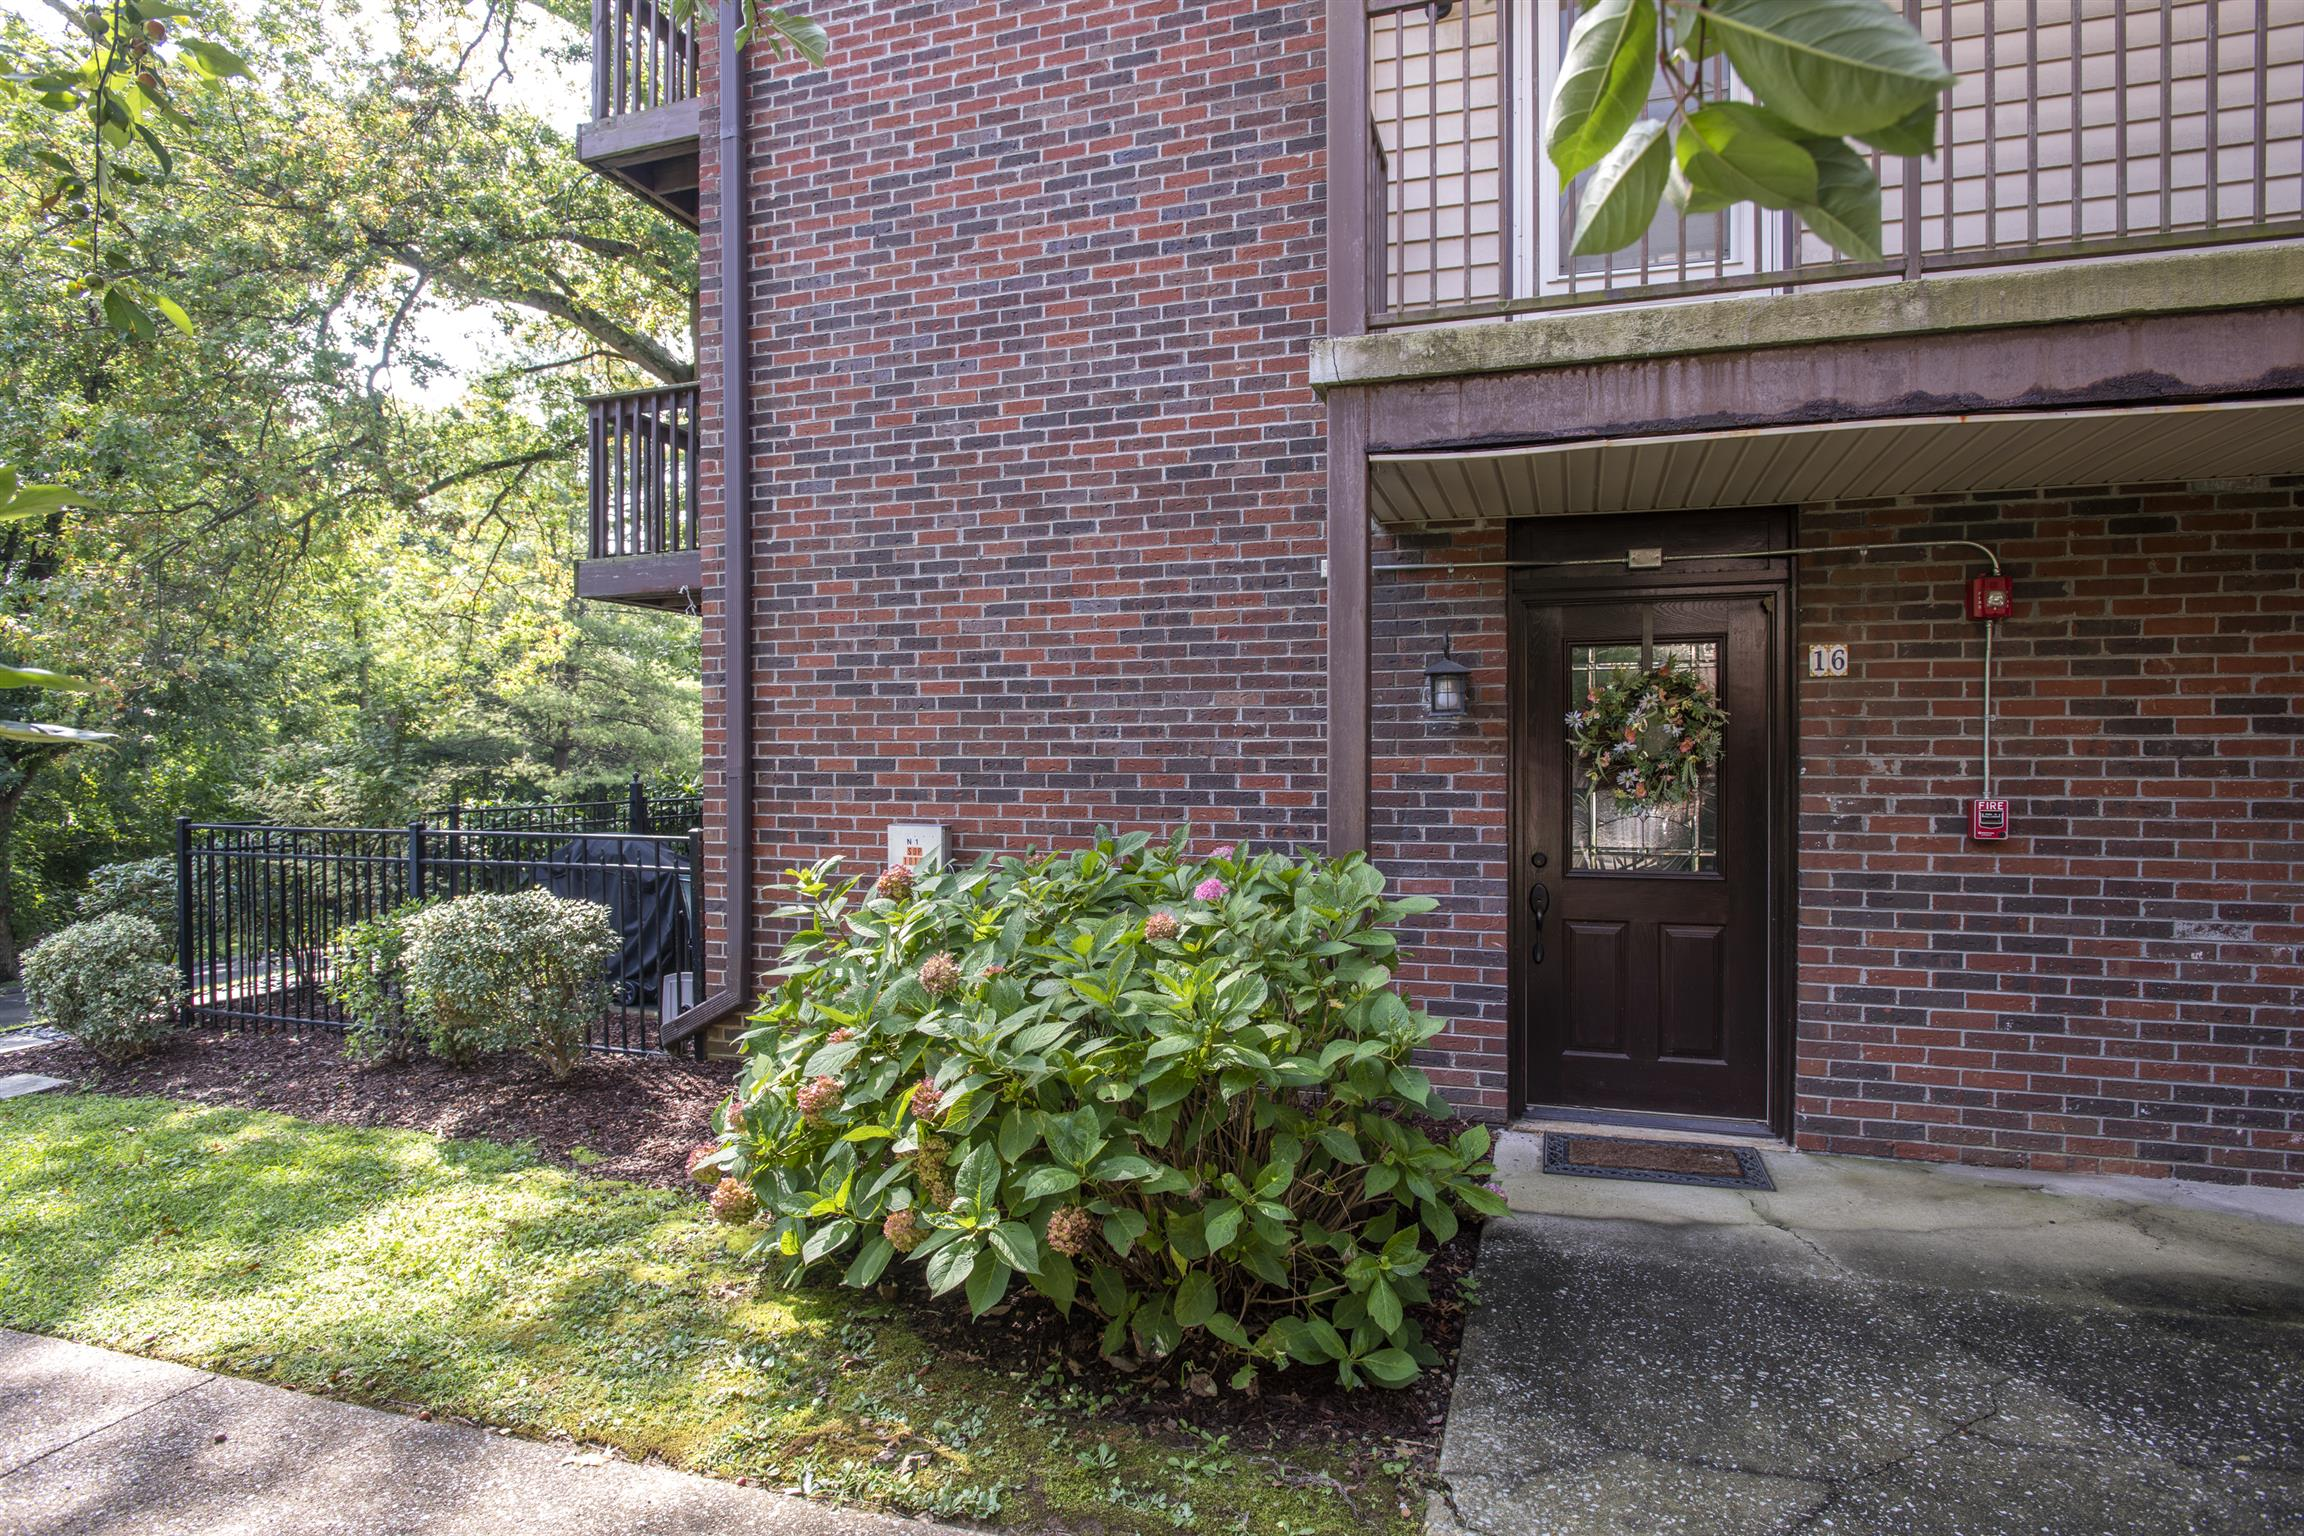 500 Paragon Mills Rd Apt N16, Nashville, TN 37211 - Nashville, TN real estate listing